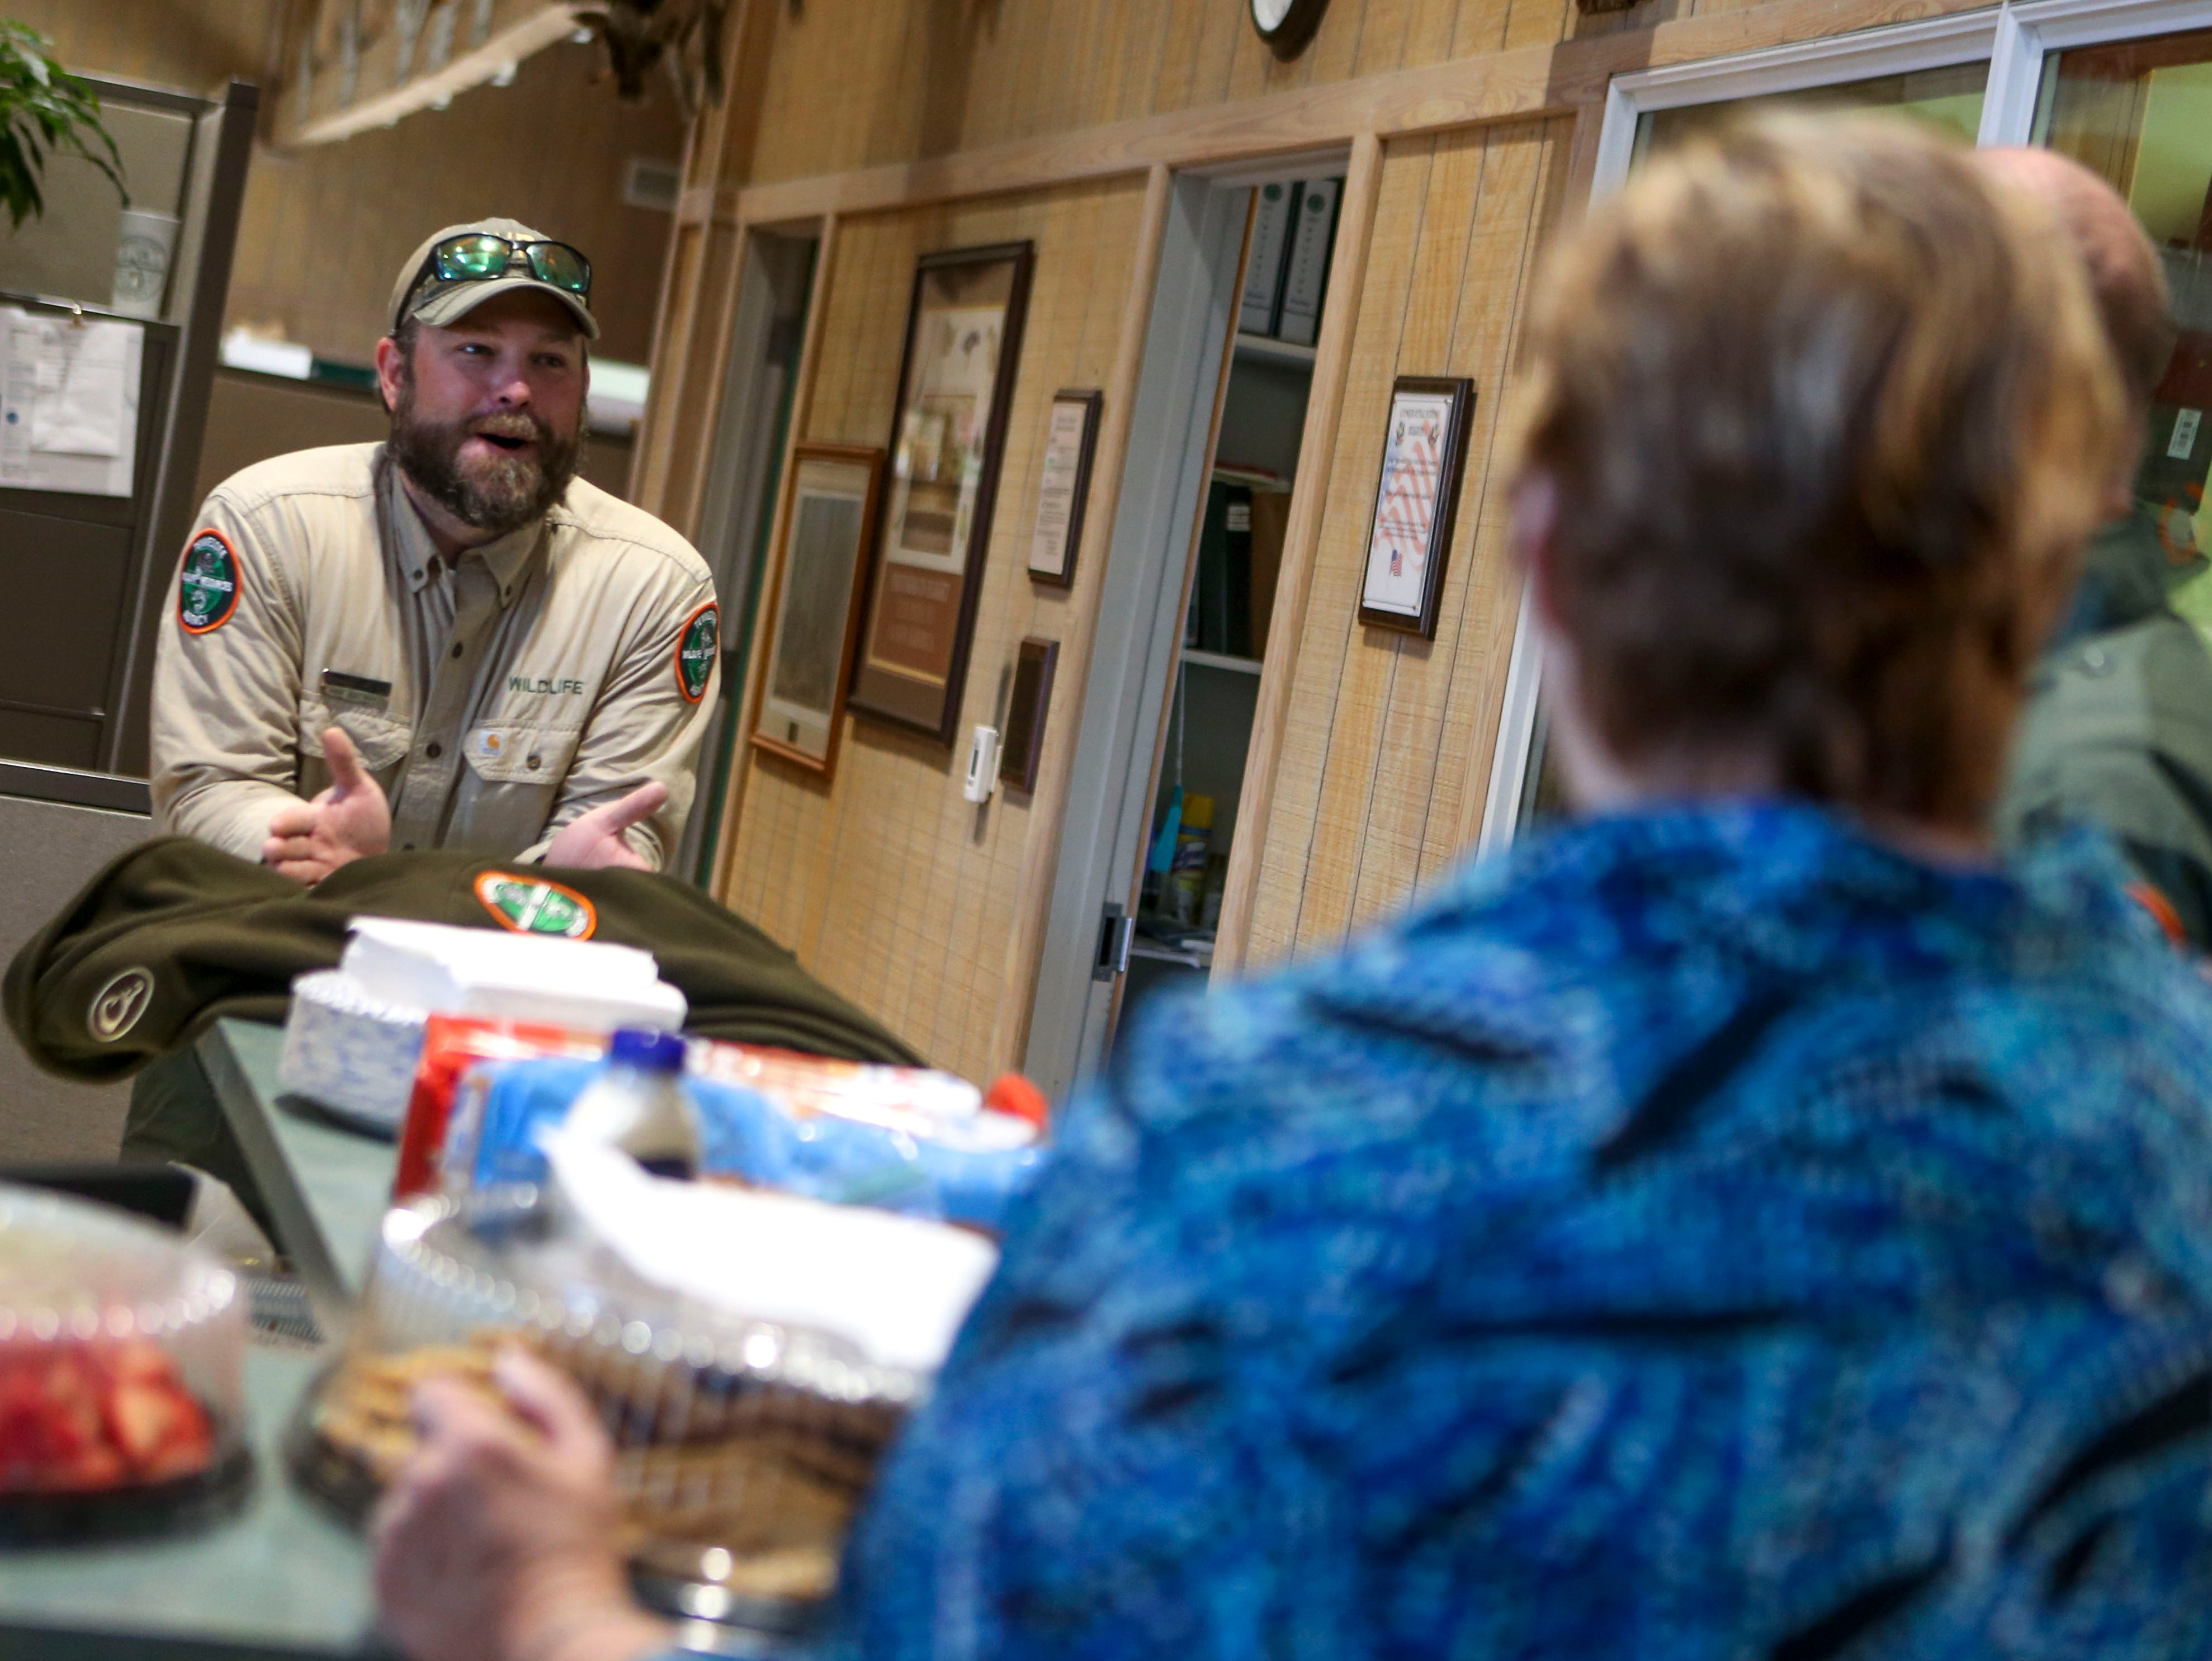 """Daniel Stanfield, the """"favorite son-in-law"""" of Linda Rizzuto, a volunteer to bring around snacks for law enforcement agencies, jokes around with Rizzuto at the Tennessee Wildlife Resource Agency Region One offices in Jackson, Tenn., on Wednesday, Jan. 9, 2019."""